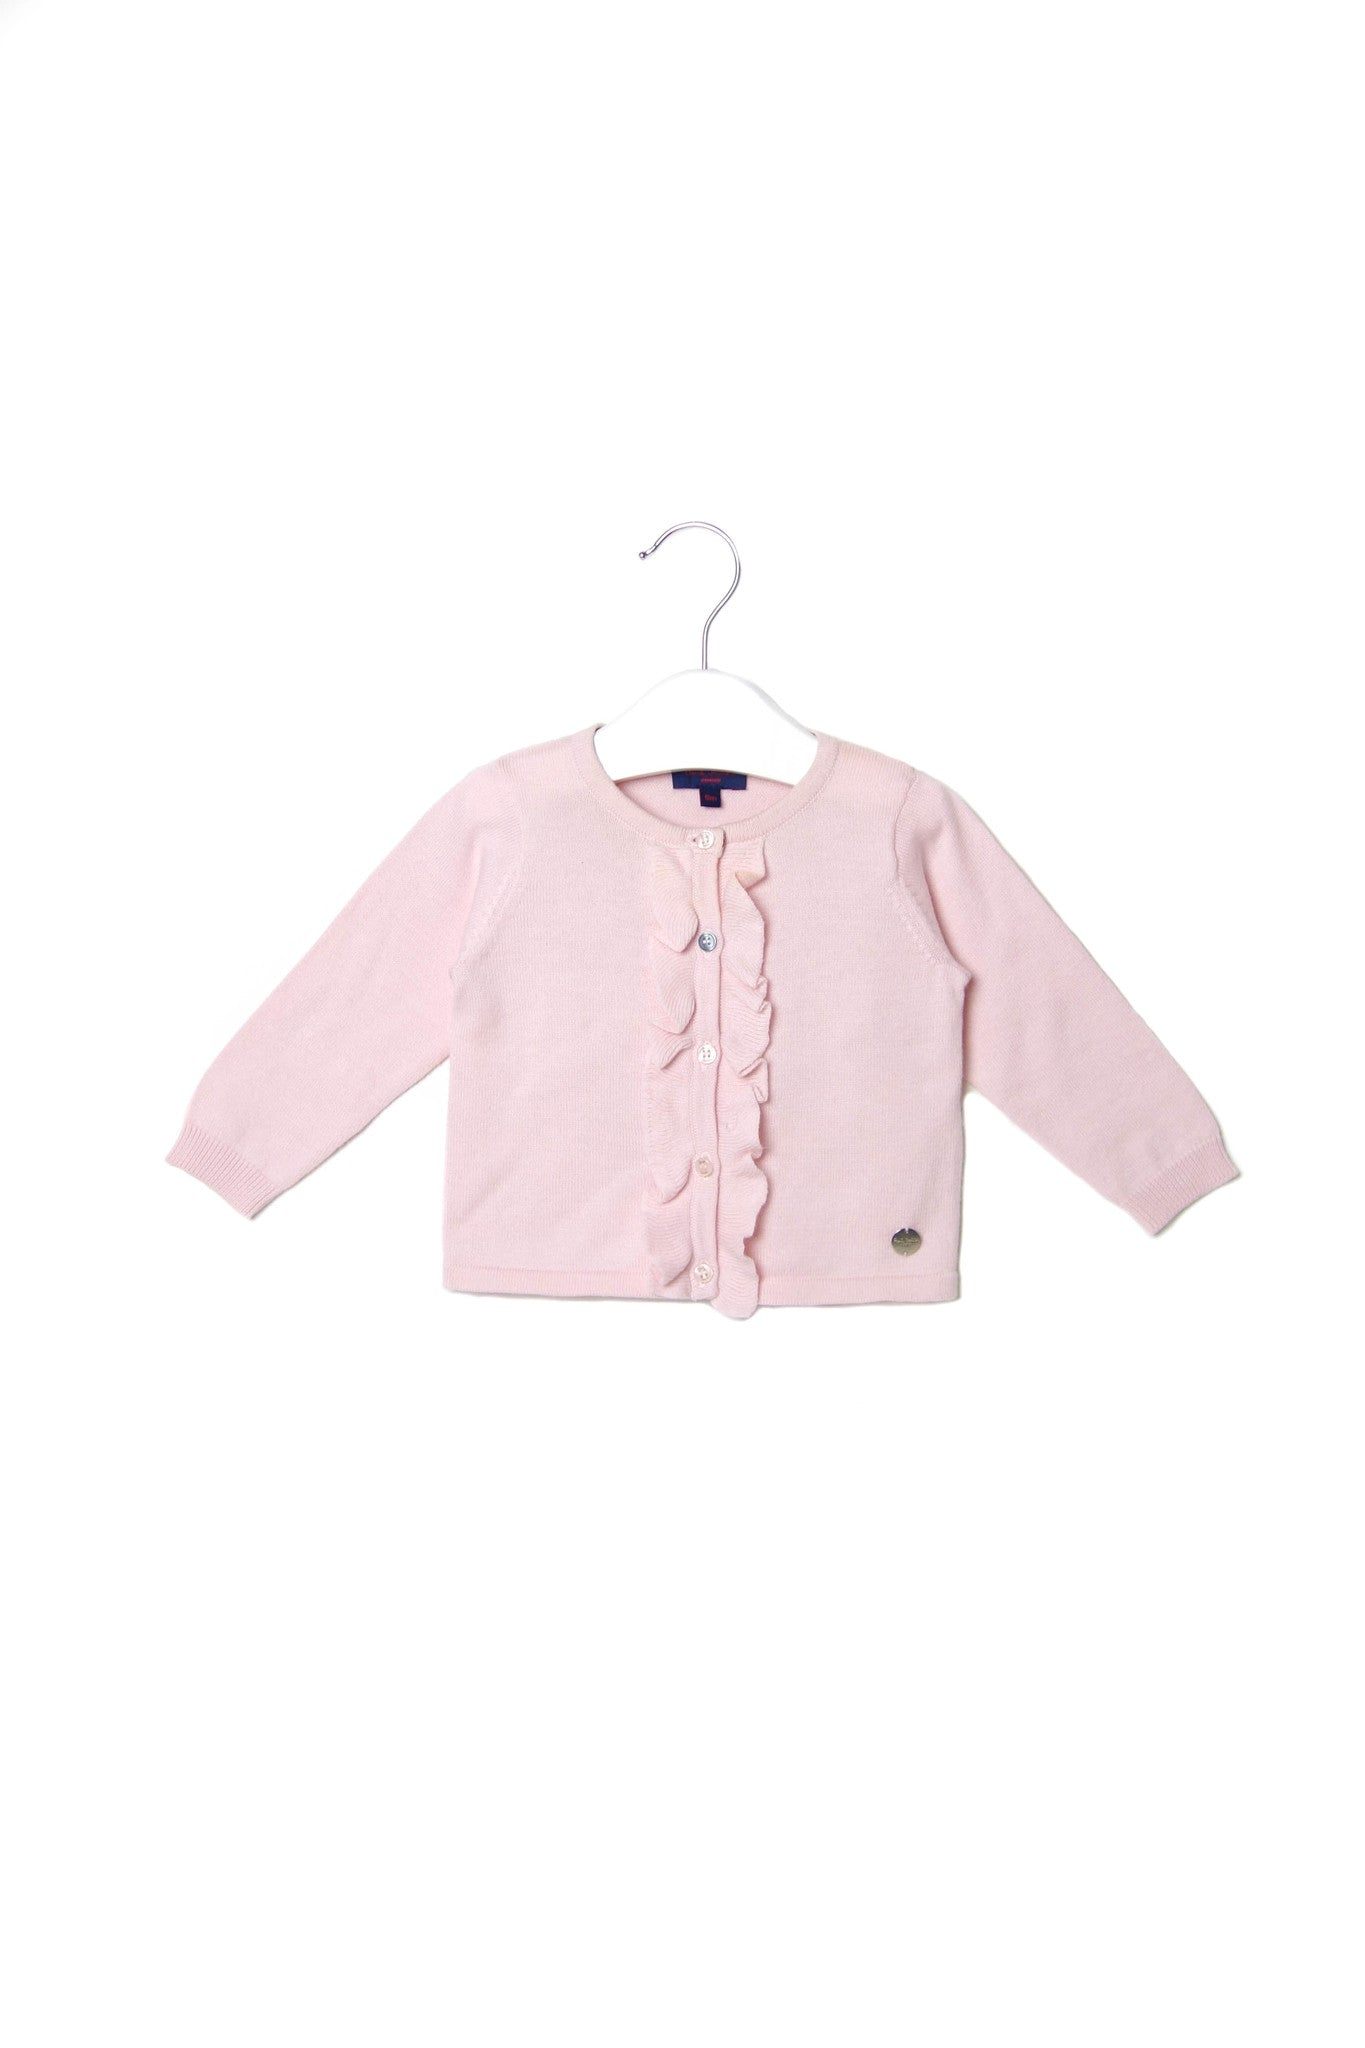 10002120 Paul Smith Baby~Cardigan 9M at Retykle